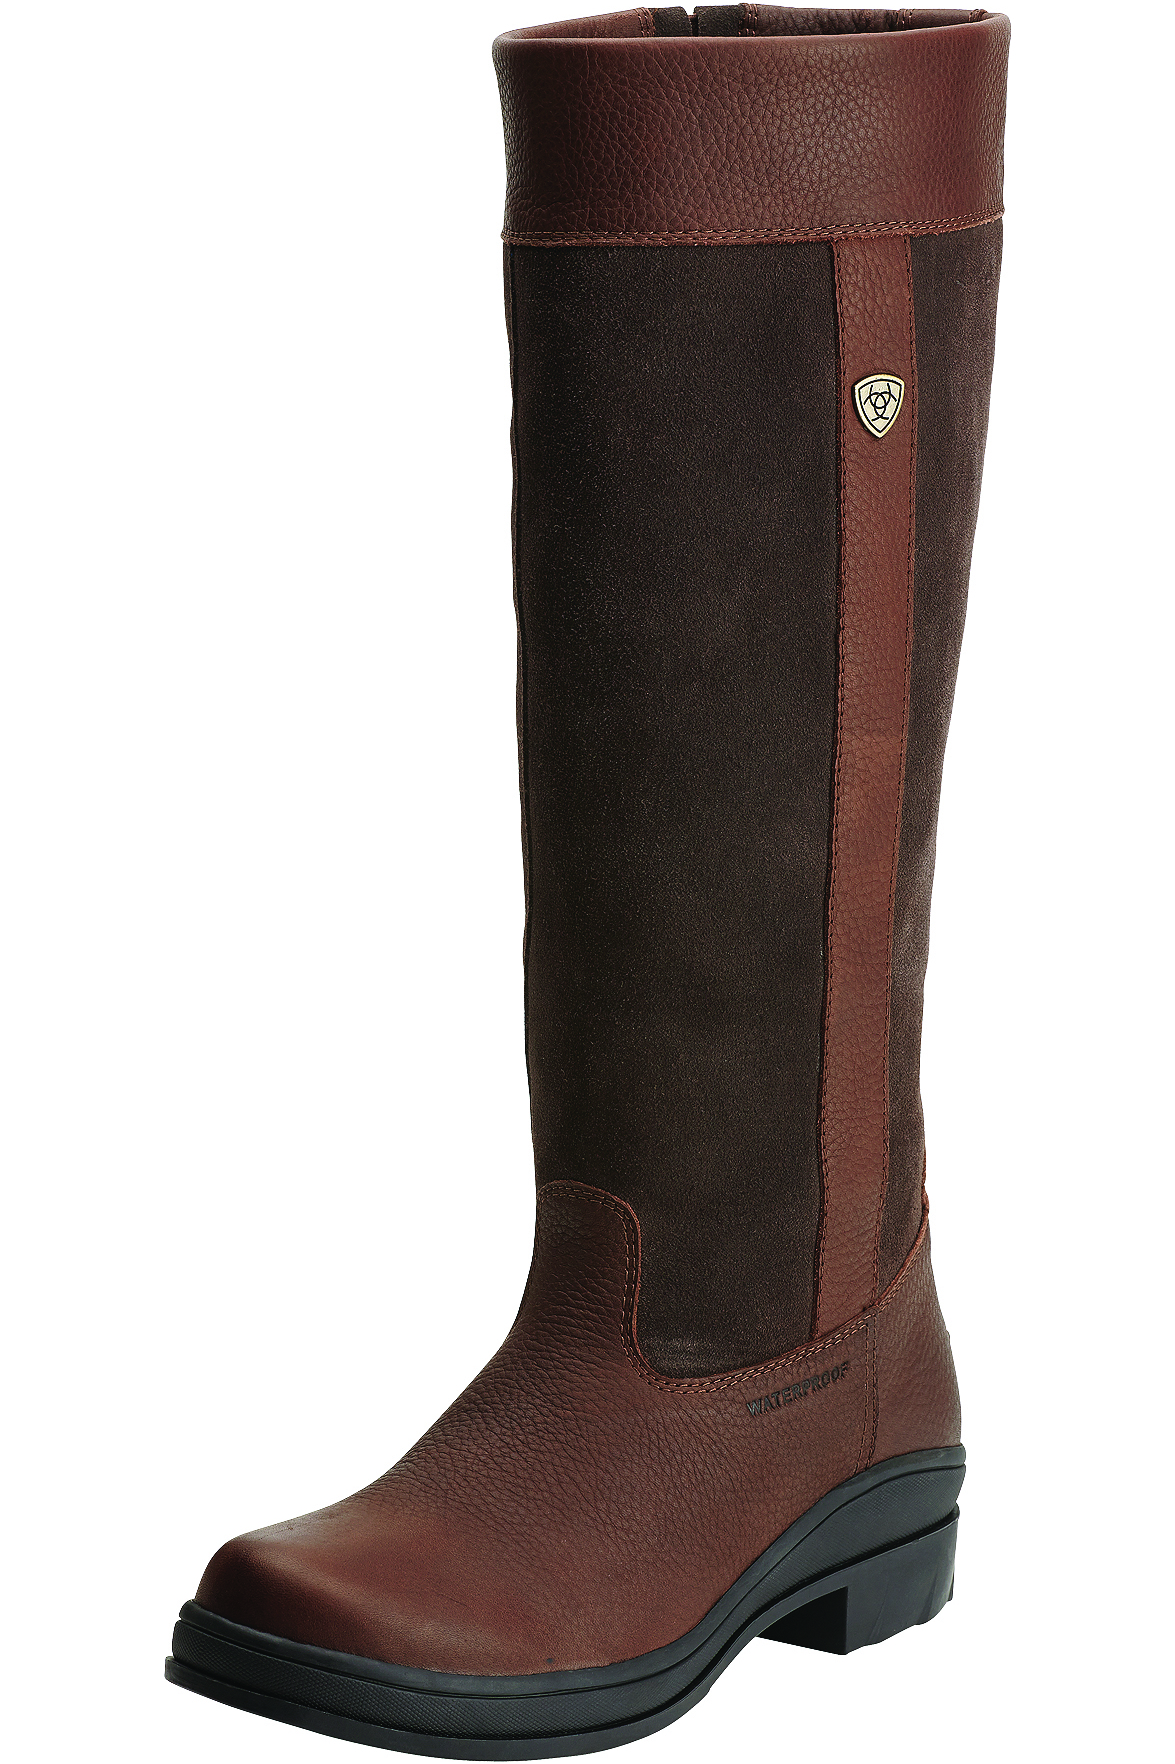 a6714fd9631 Ariat Womens Windermere H20 Country Boots Dark Brown